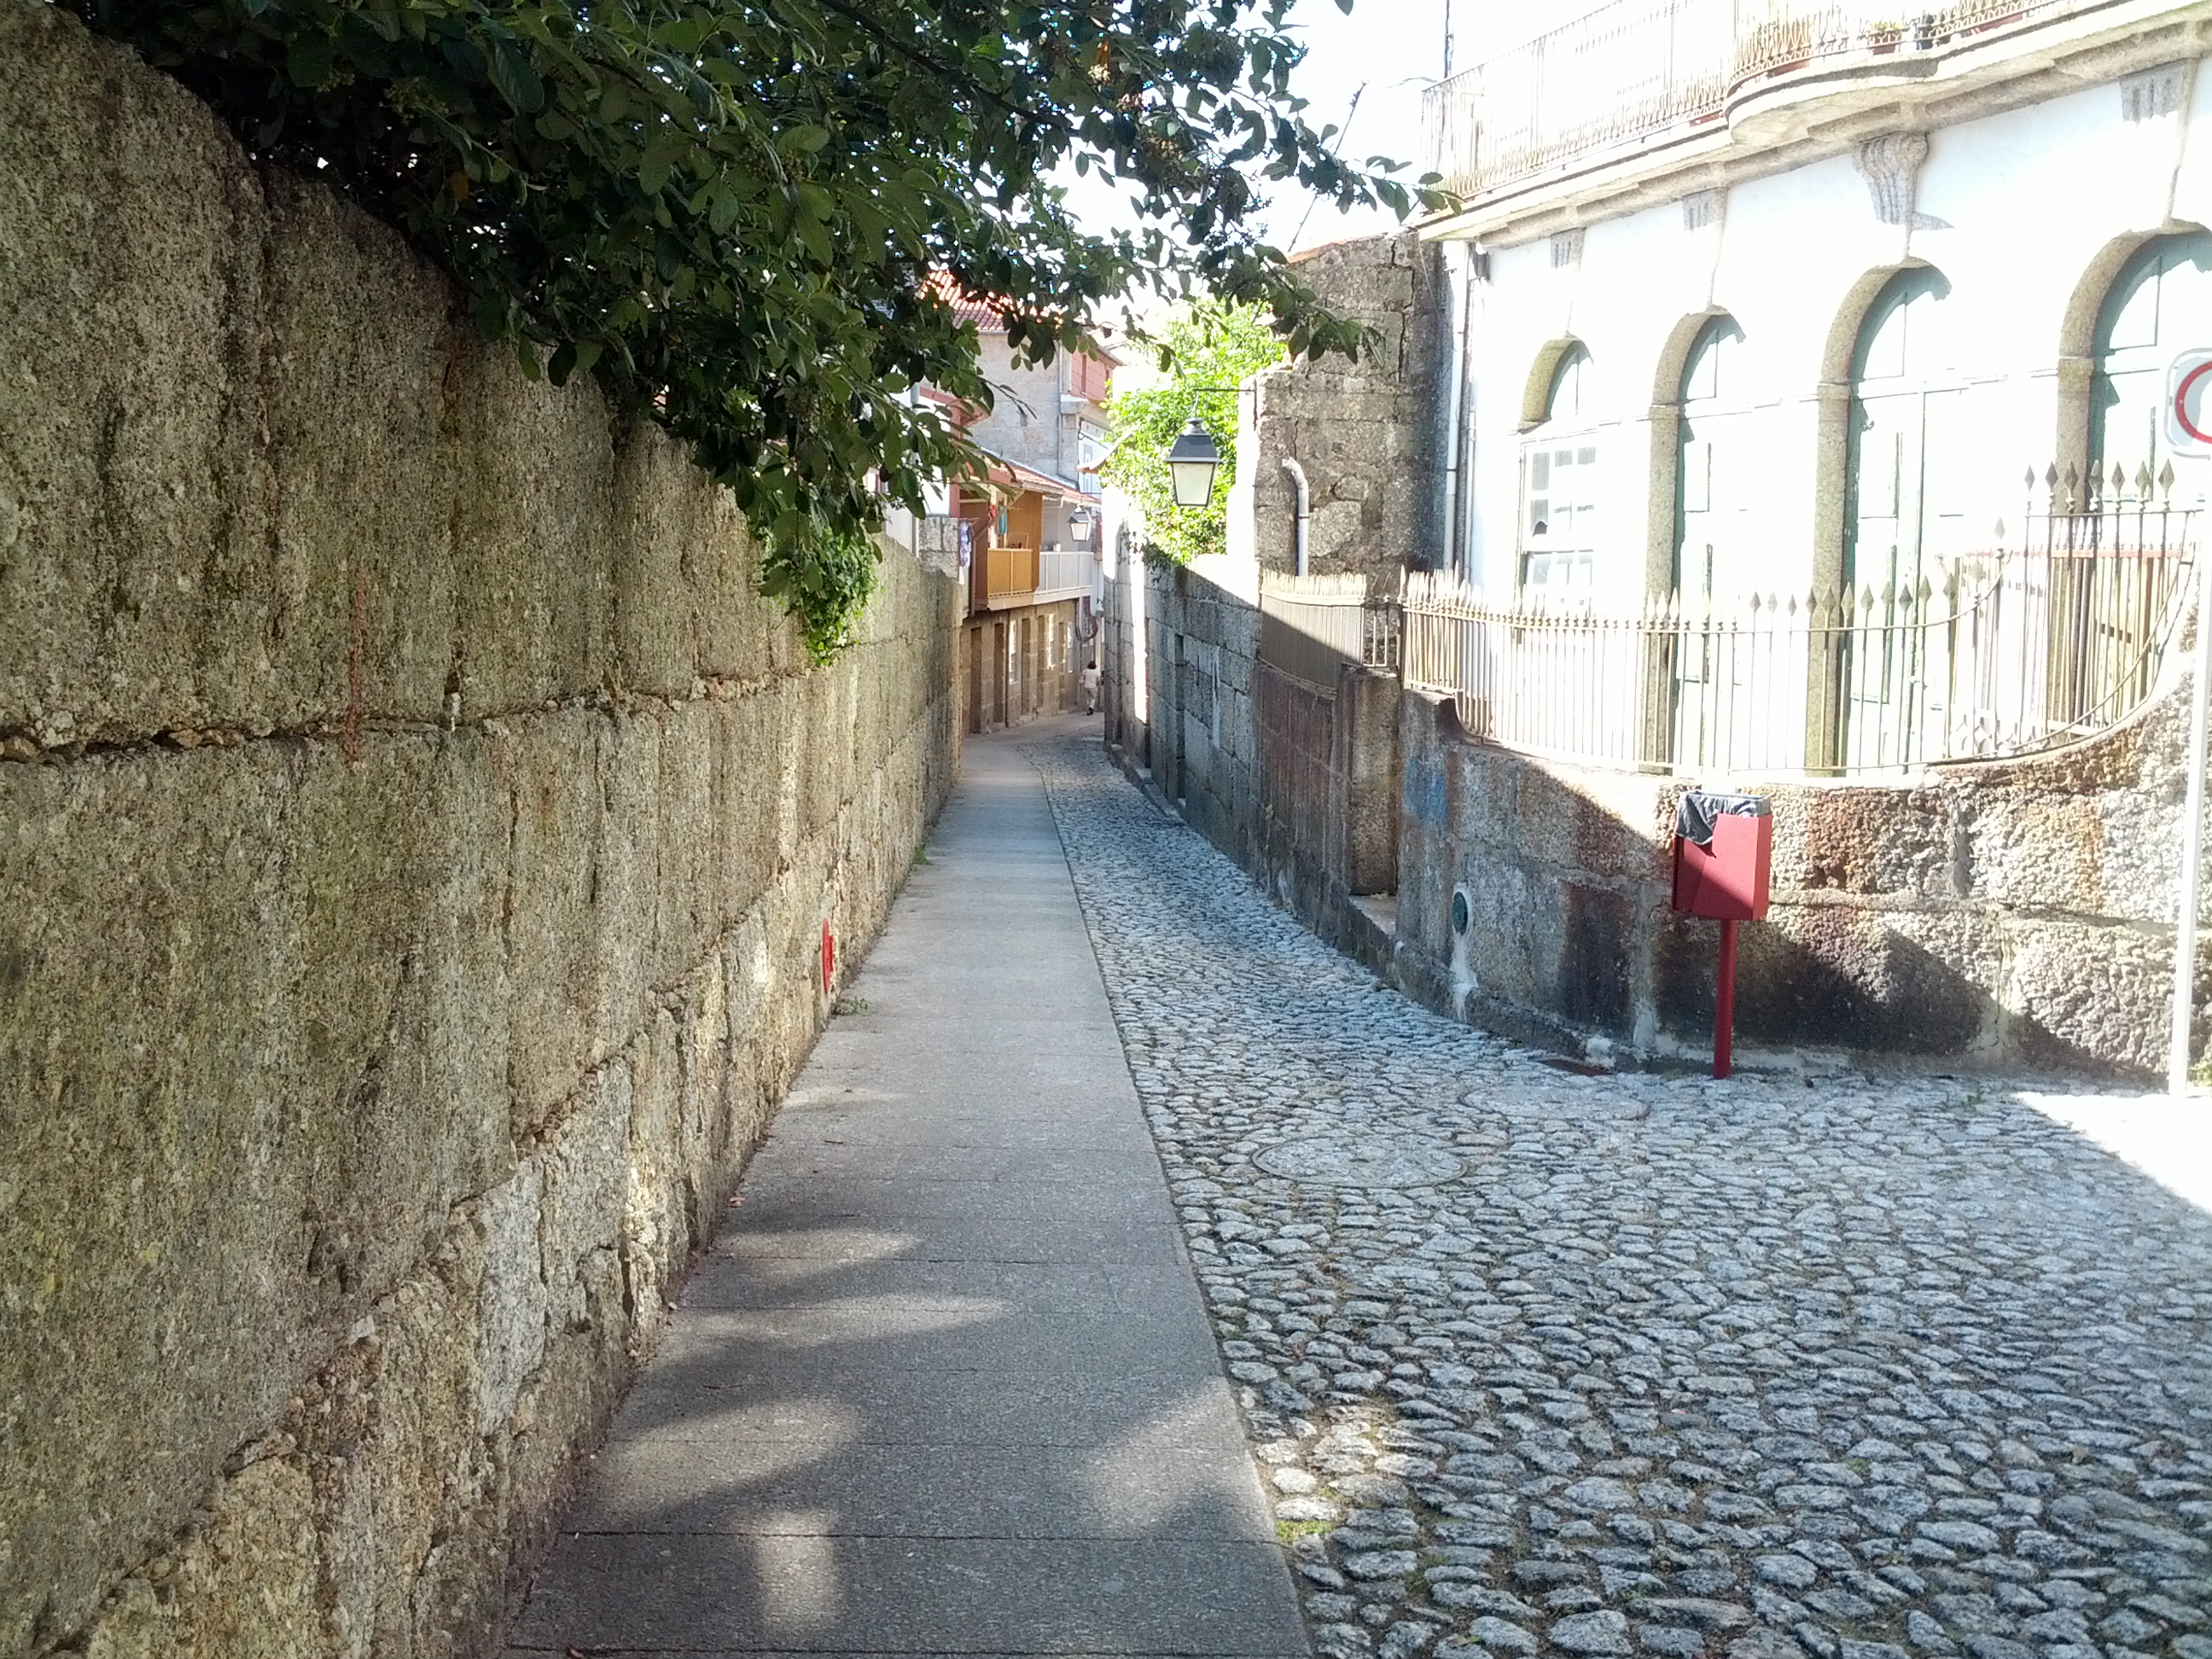 The streets of Guimarães. Source: S. Kheraj